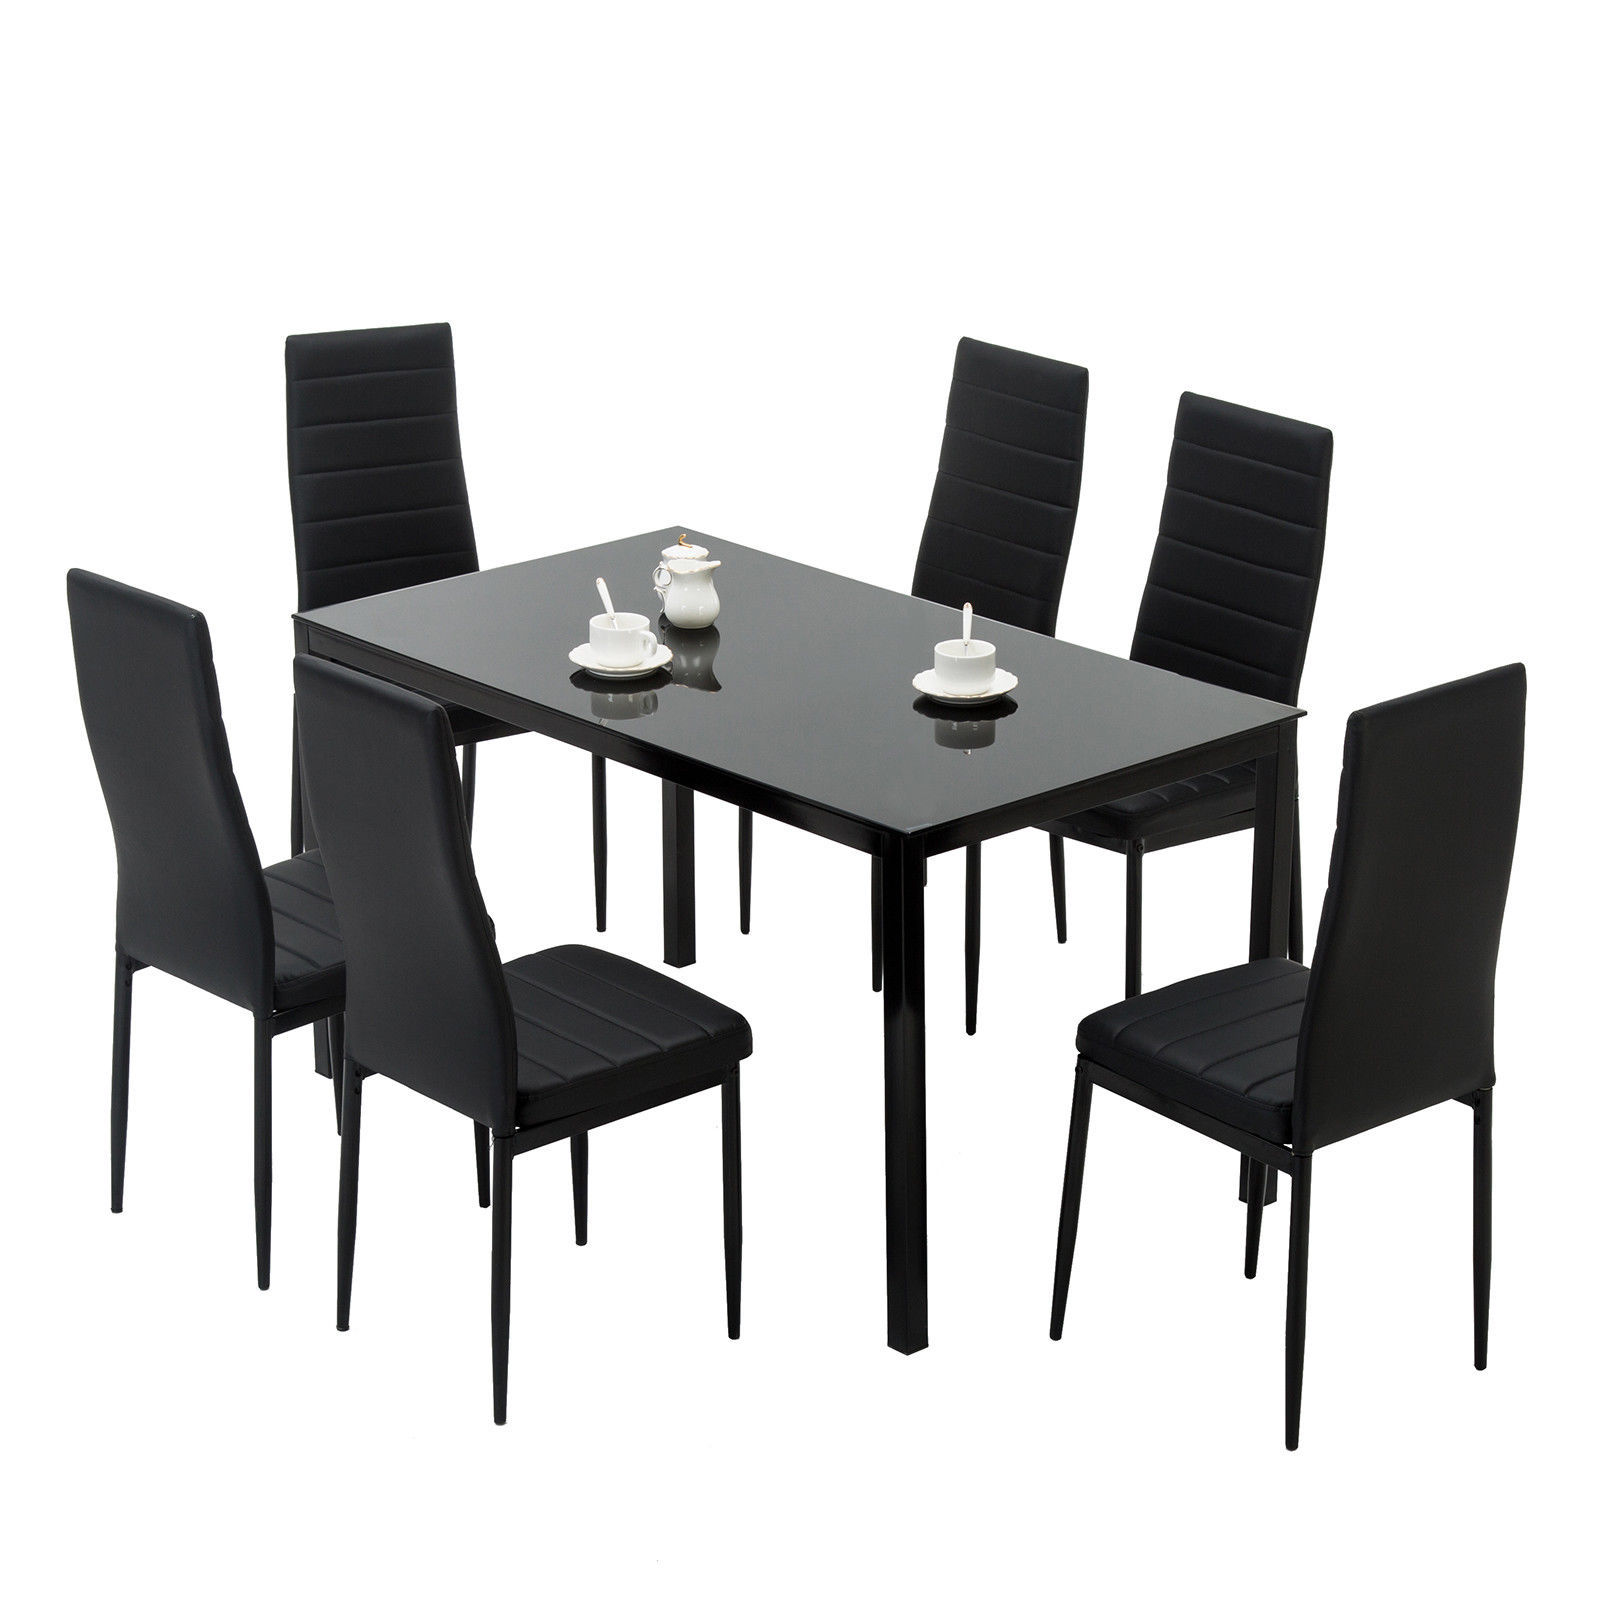 7 piece dining table set 6 chairs black glass metal kitchen room furniture5 dining sets. Black Bedroom Furniture Sets. Home Design Ideas